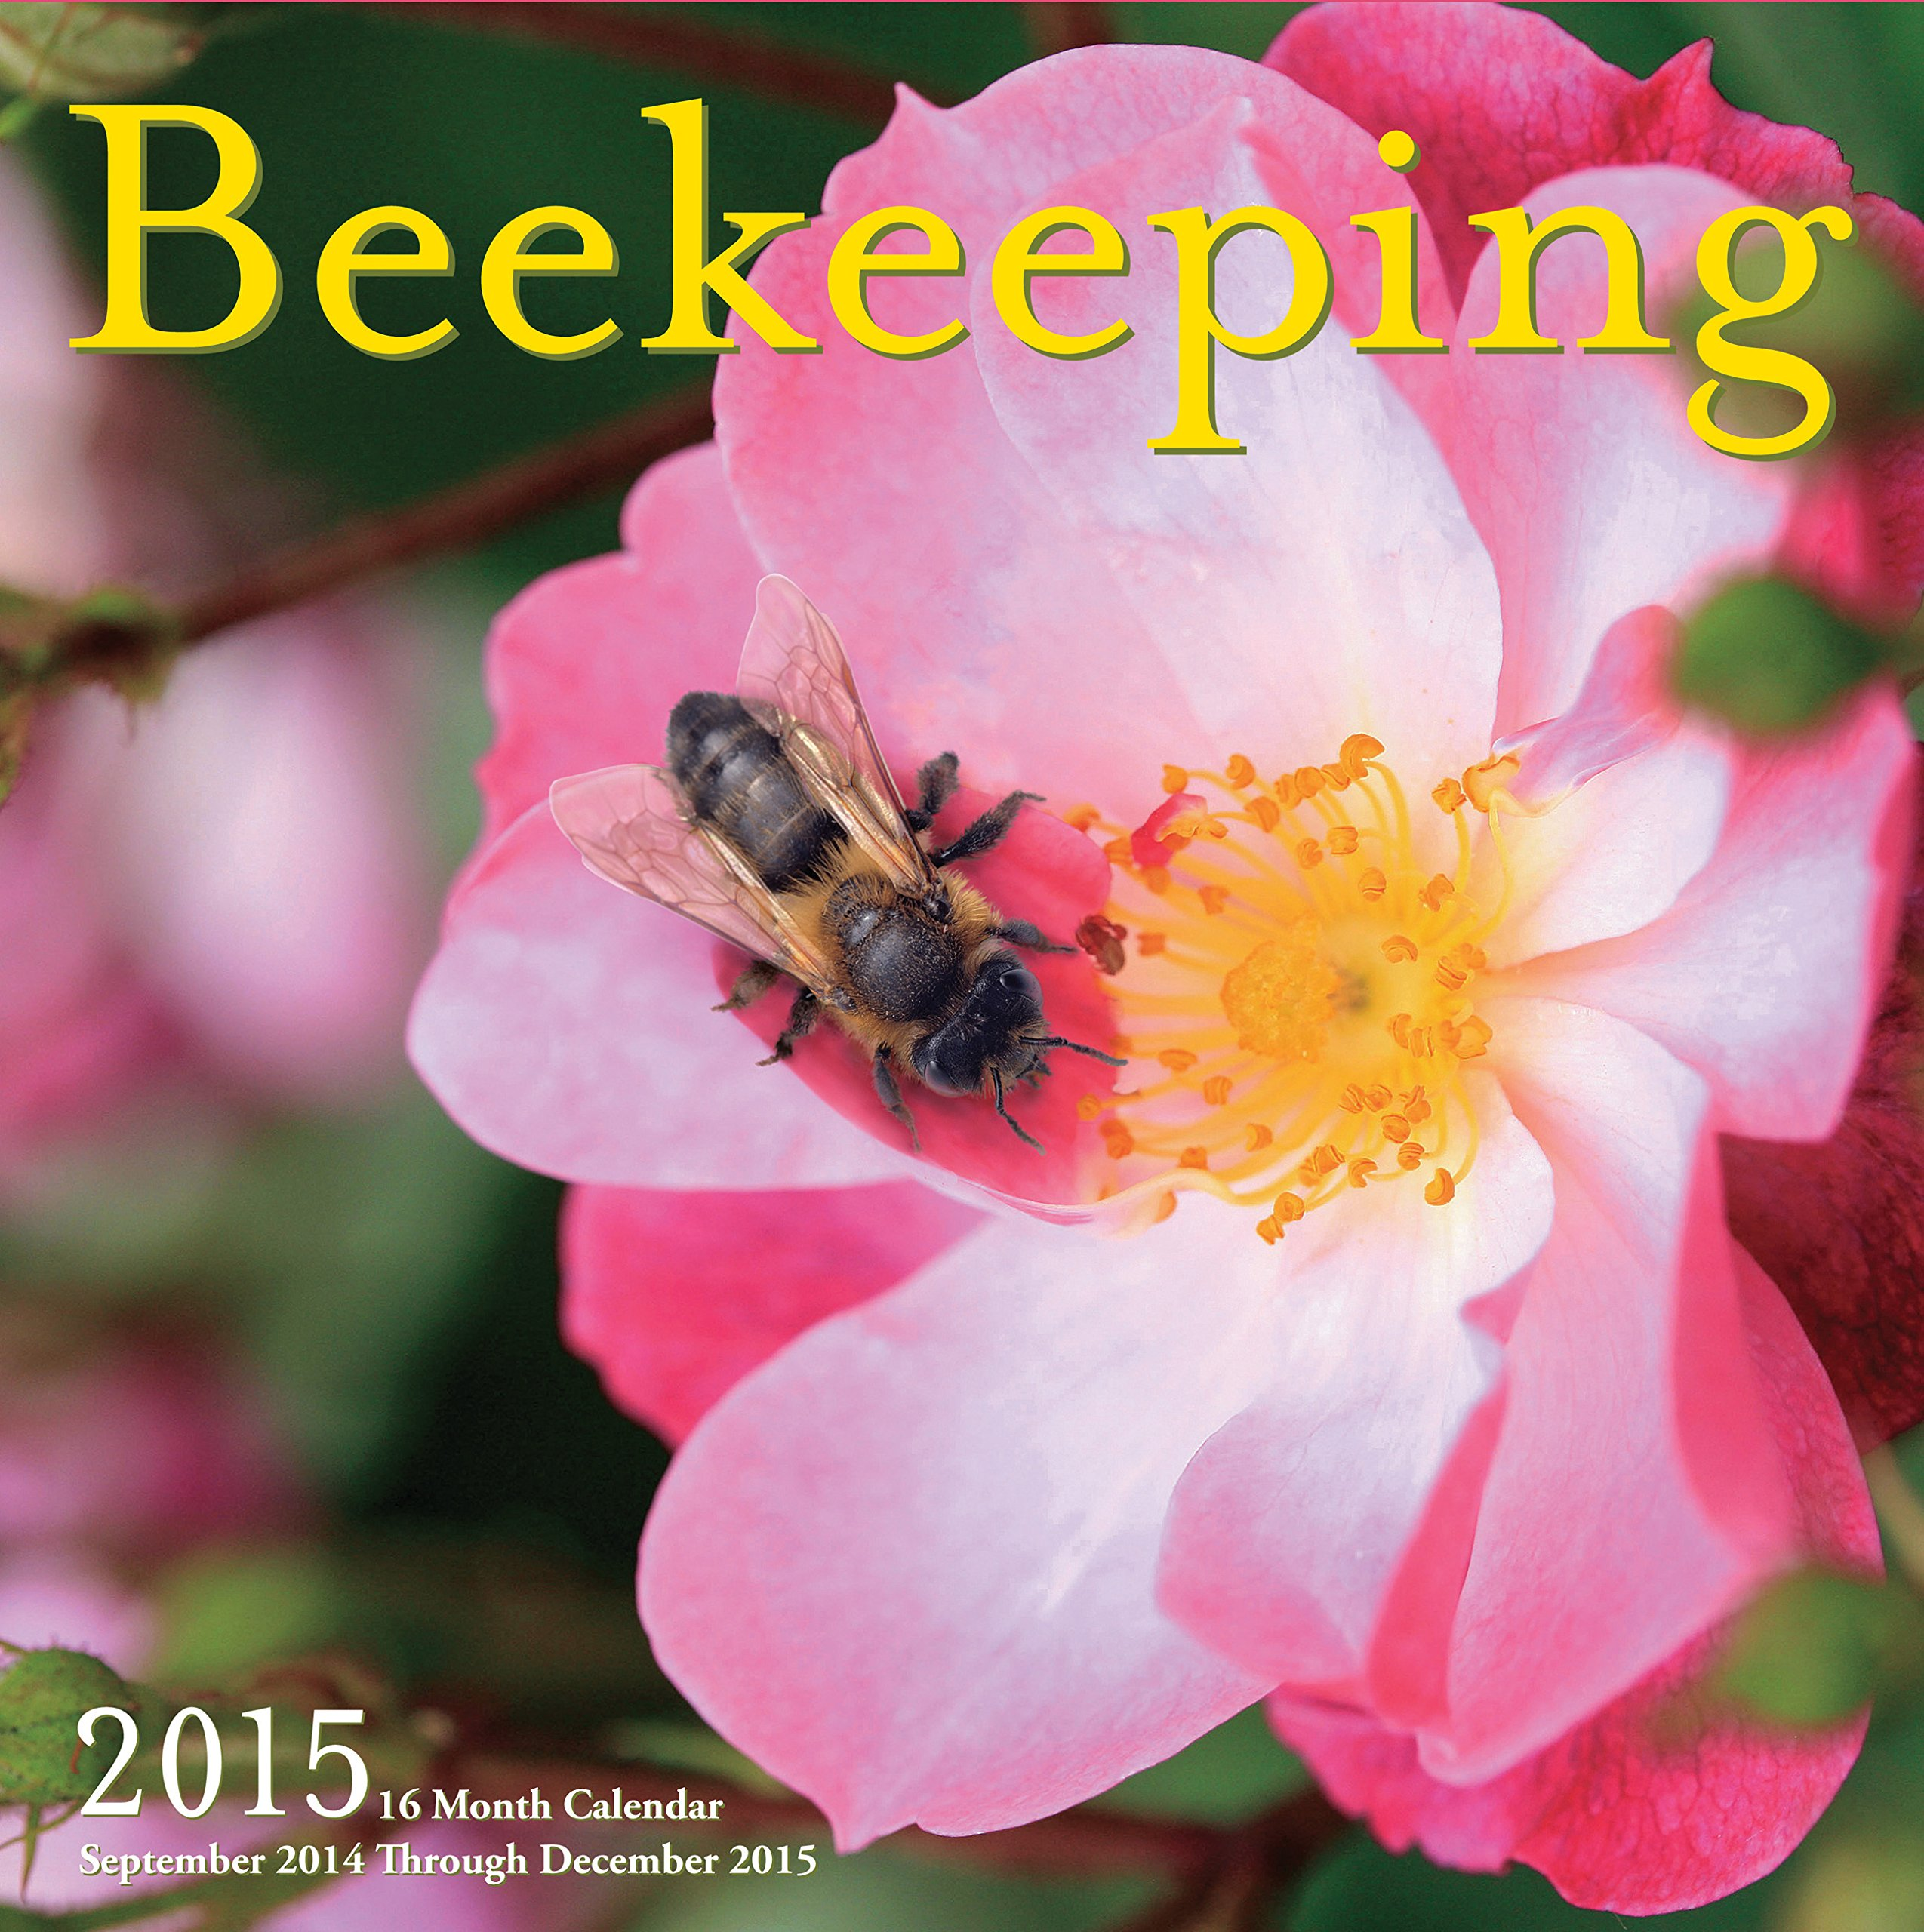 Beekeeping 2015: 16-Month Calendar September 2014 through December 2015 by Race Point Publishing (Image #1)